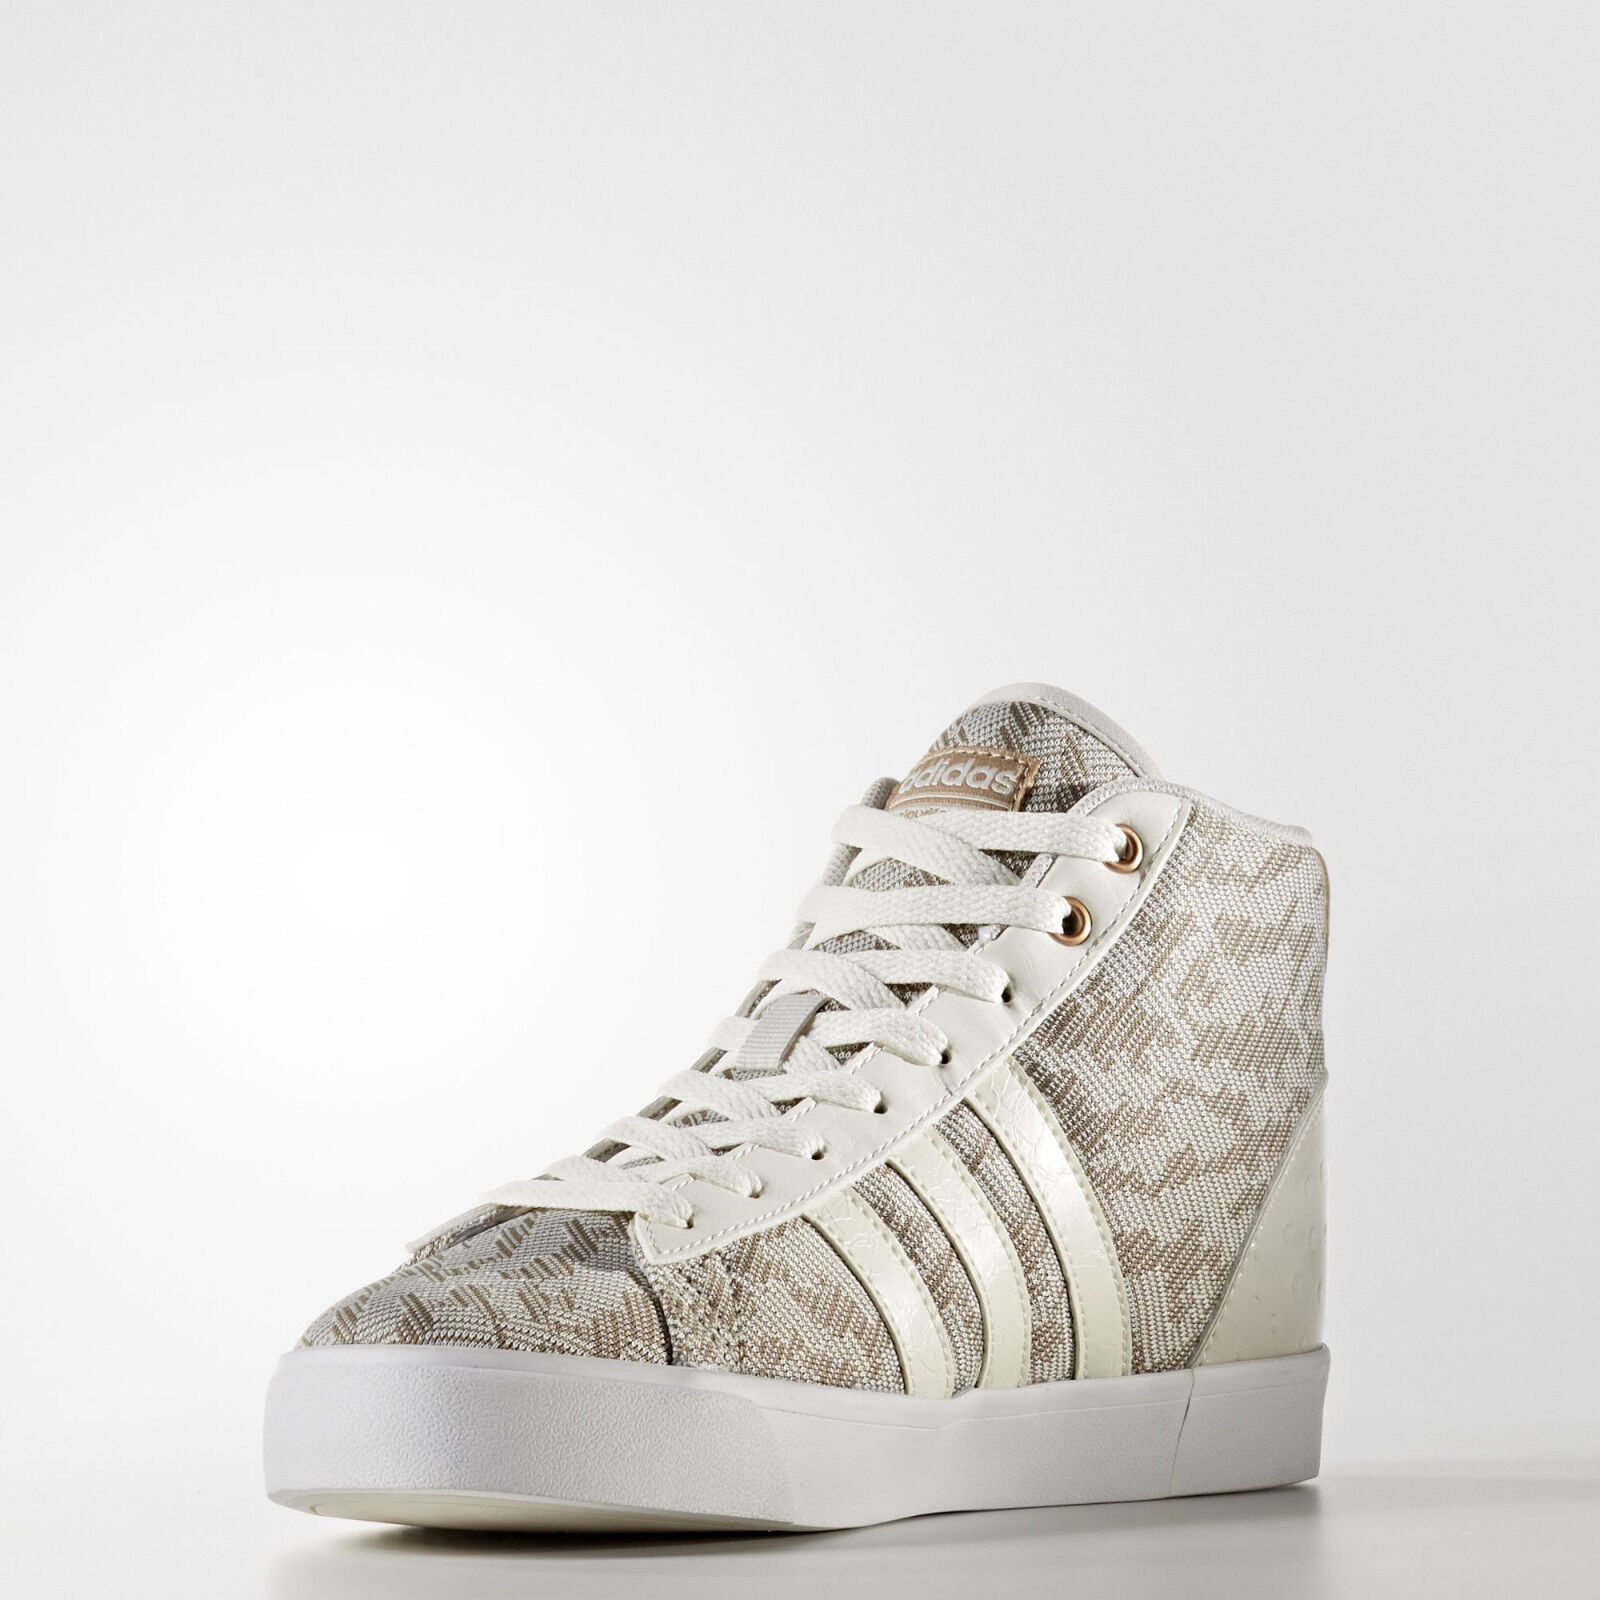 Adidas Neo Women shoes Cloudfoam Daily QT Mid Modern Casual Fashion B74275